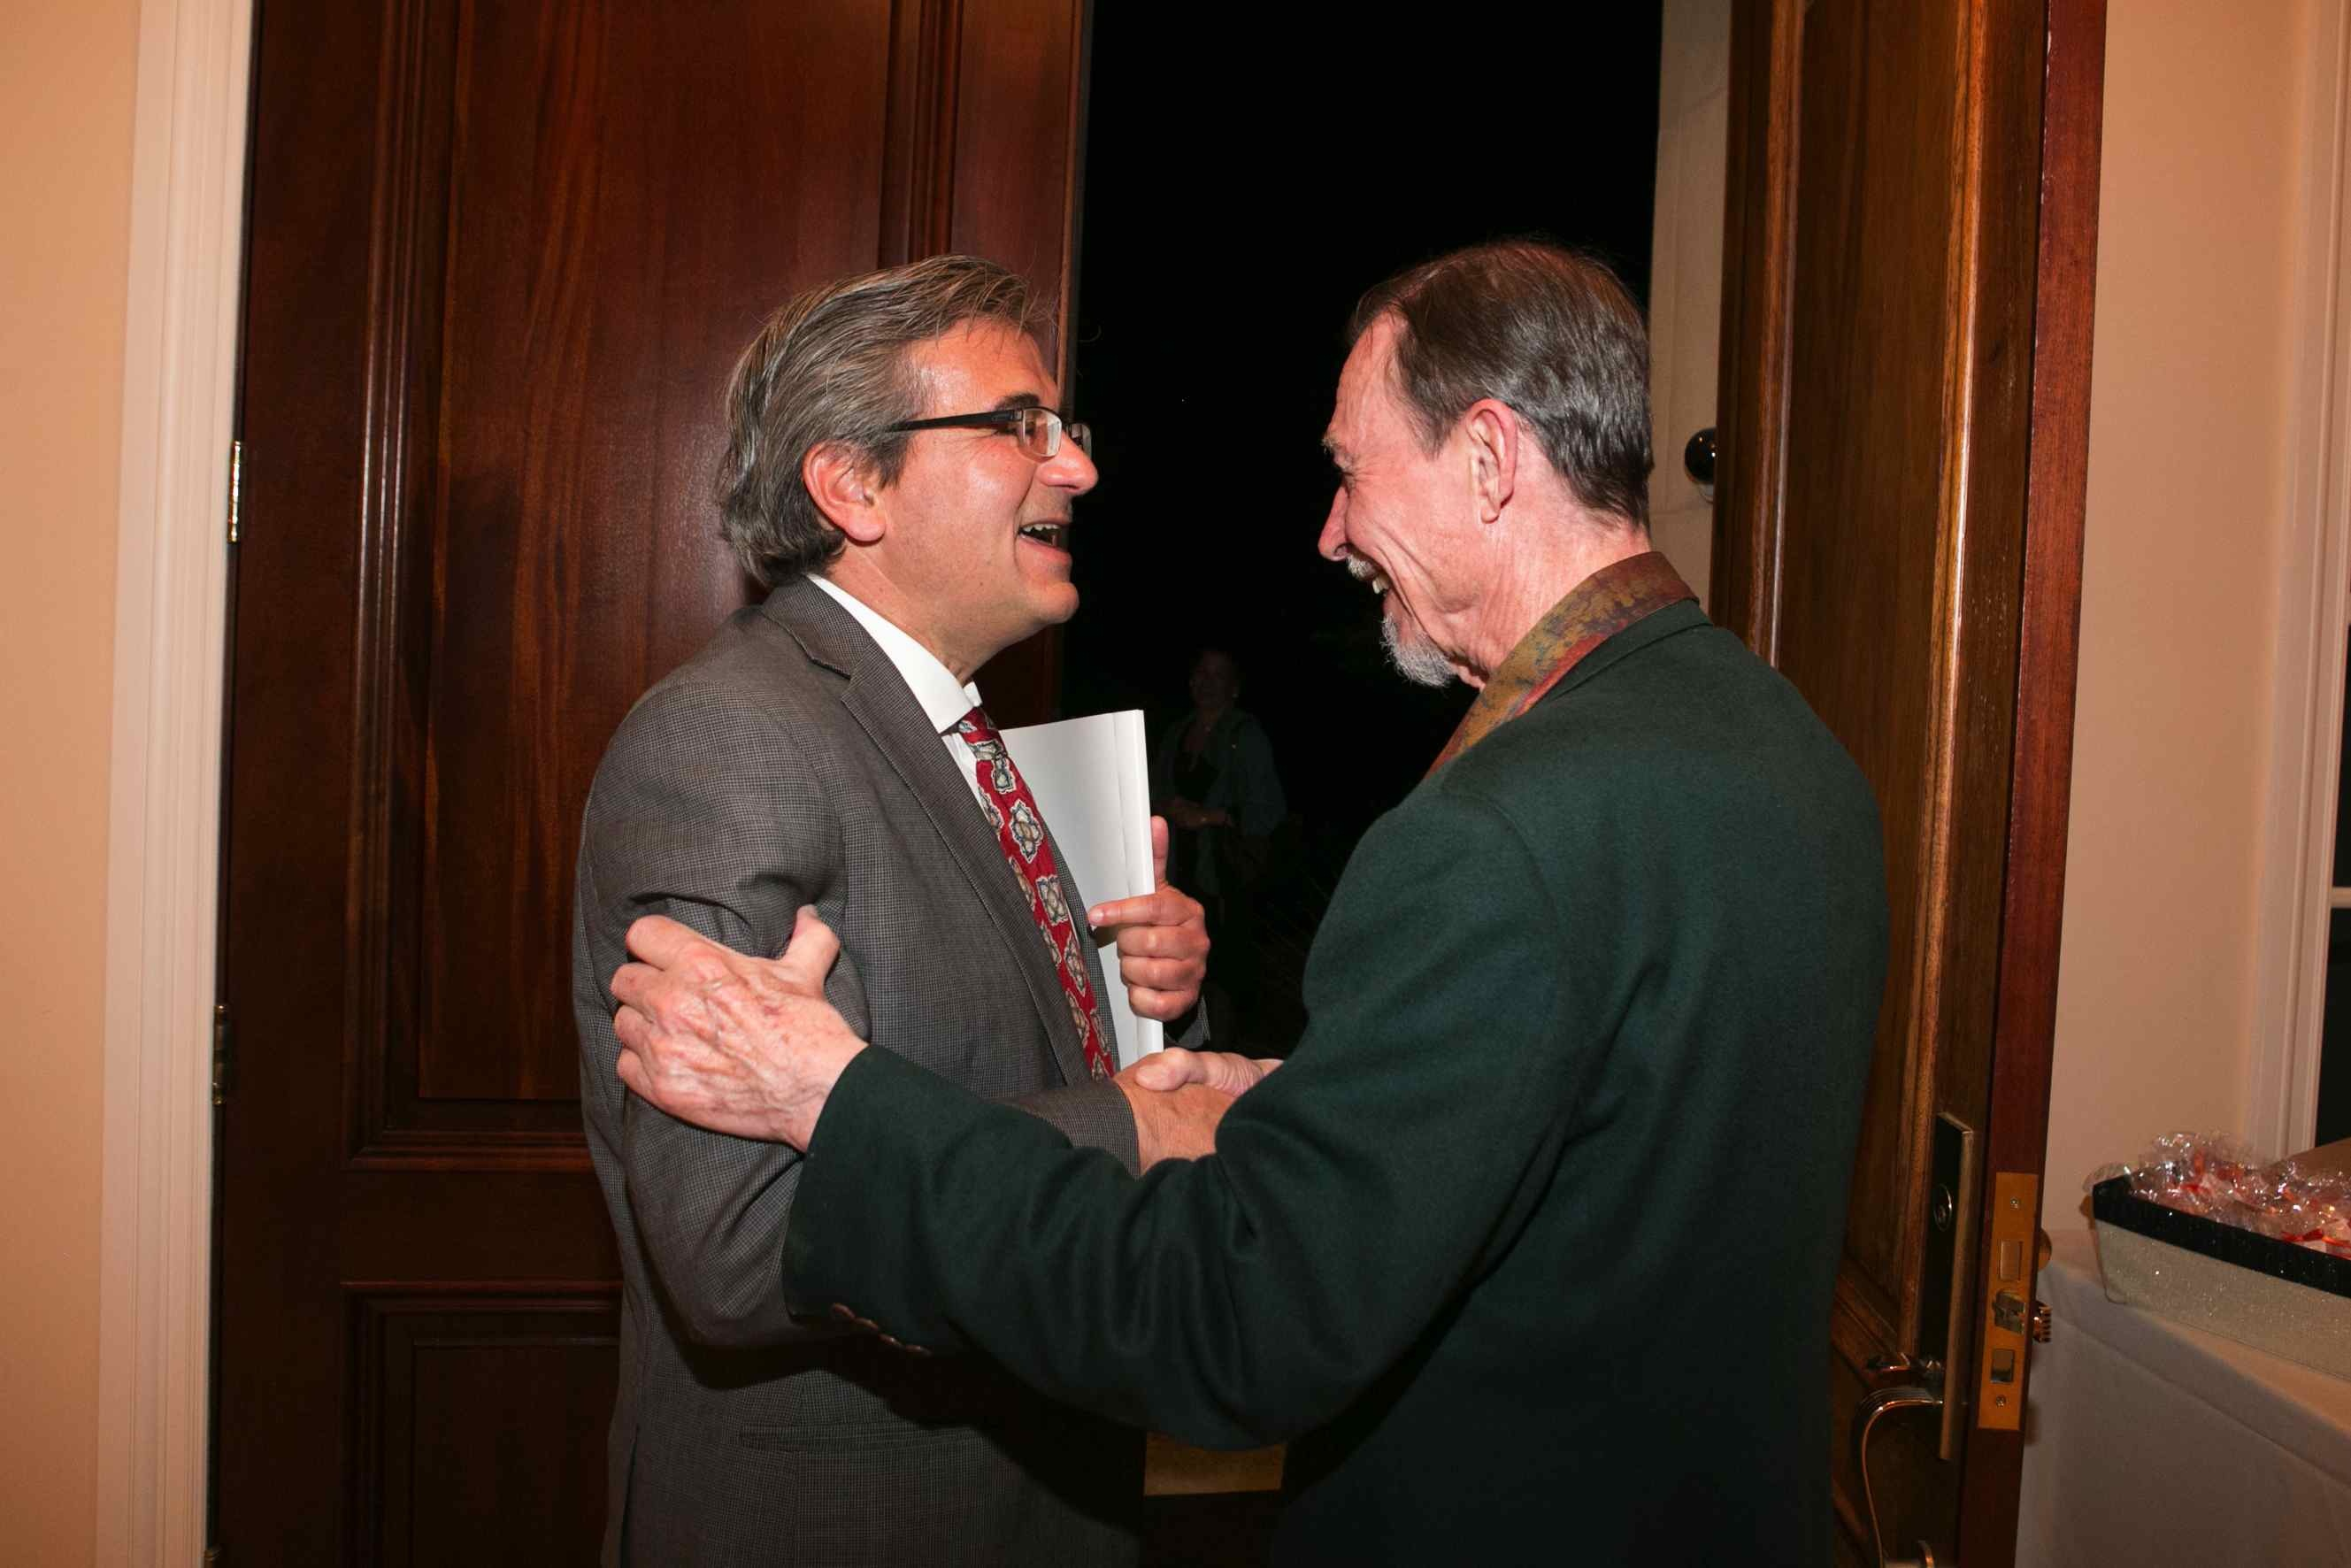 Chair Ares Rosakis congratulating Professor Carver Mead